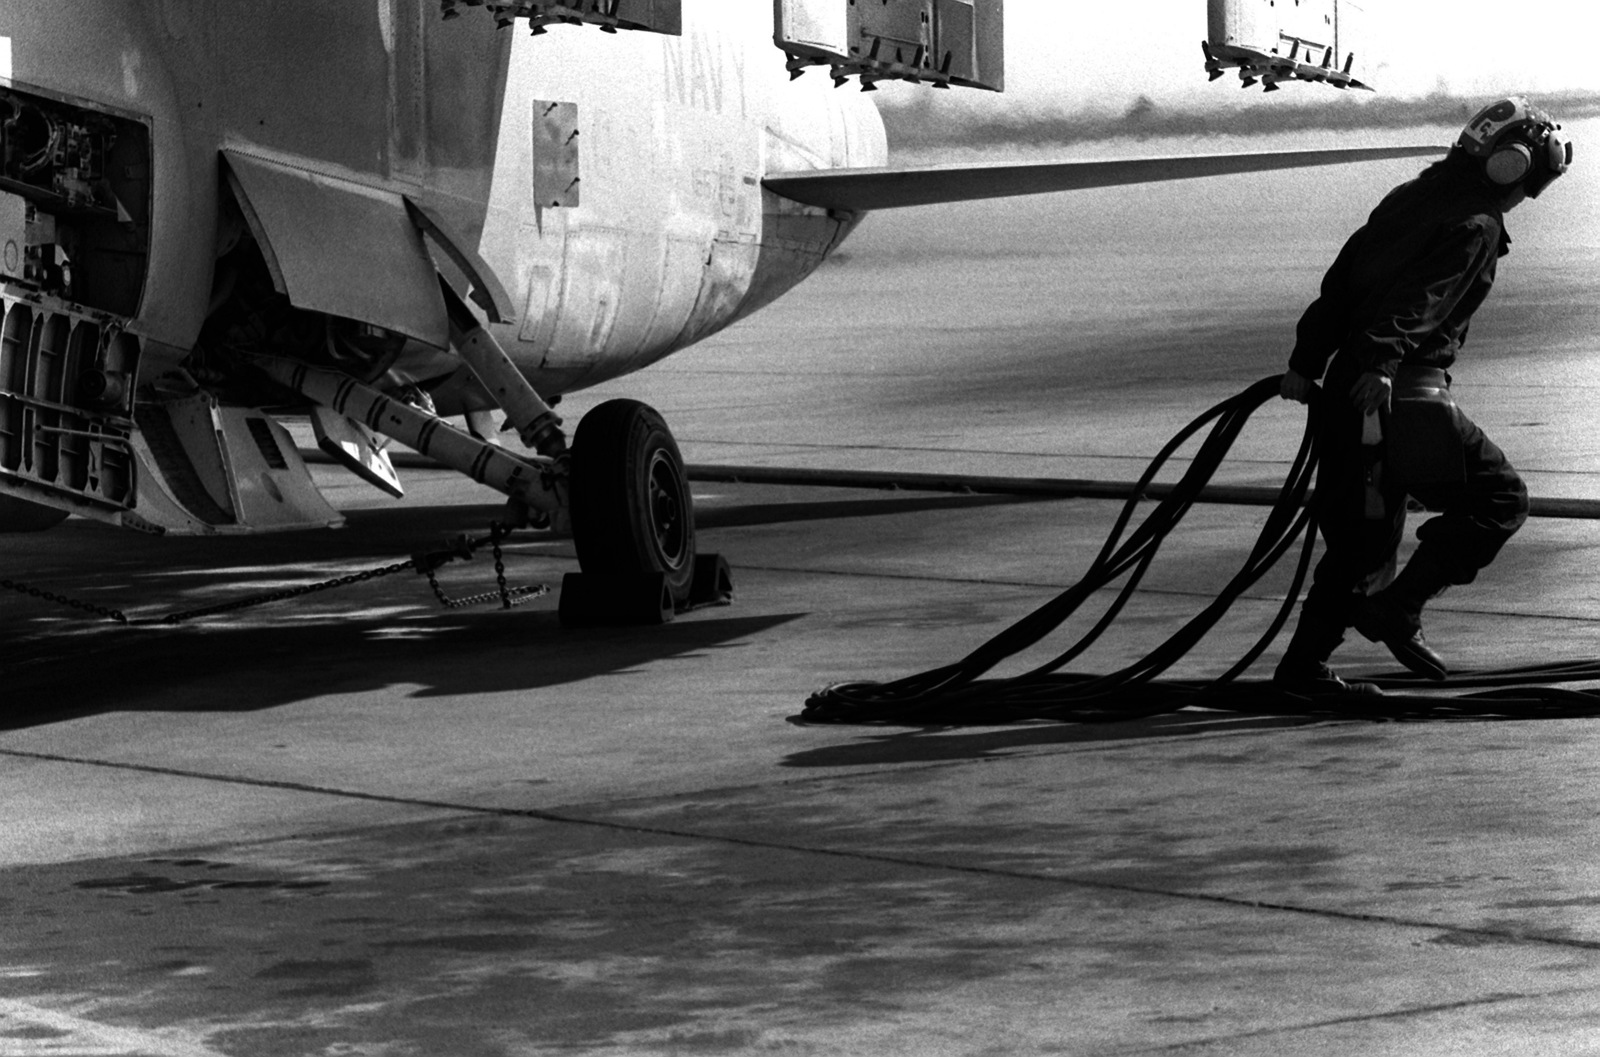 AIRMAN Grisselle Martinez drags power cables away from an A-7 Corsair II aircraft